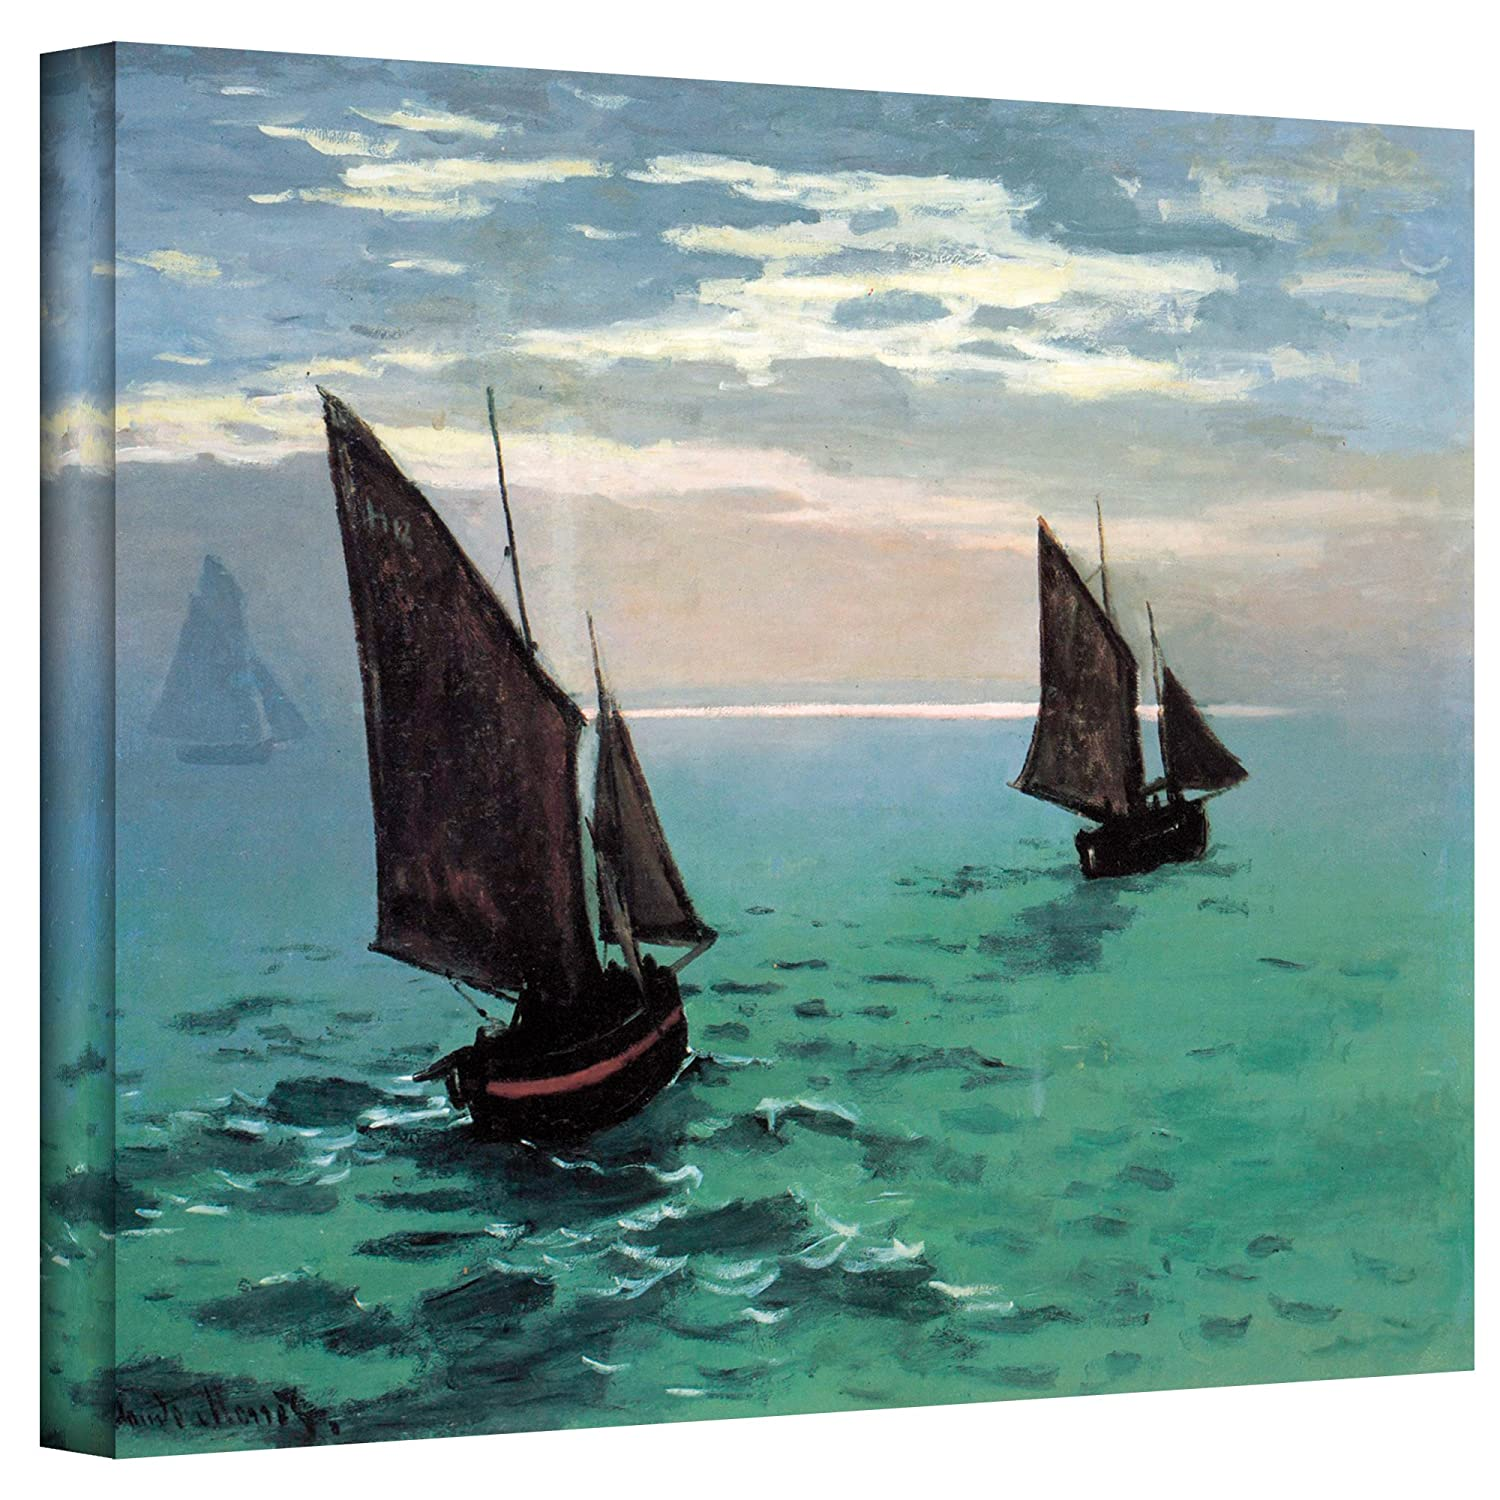 ArtWall Two Sailboats Gallery Wrapped Canvas by Claude Monet, 18 by 24-Inch The Art Wall Cmonet33-18x24-w